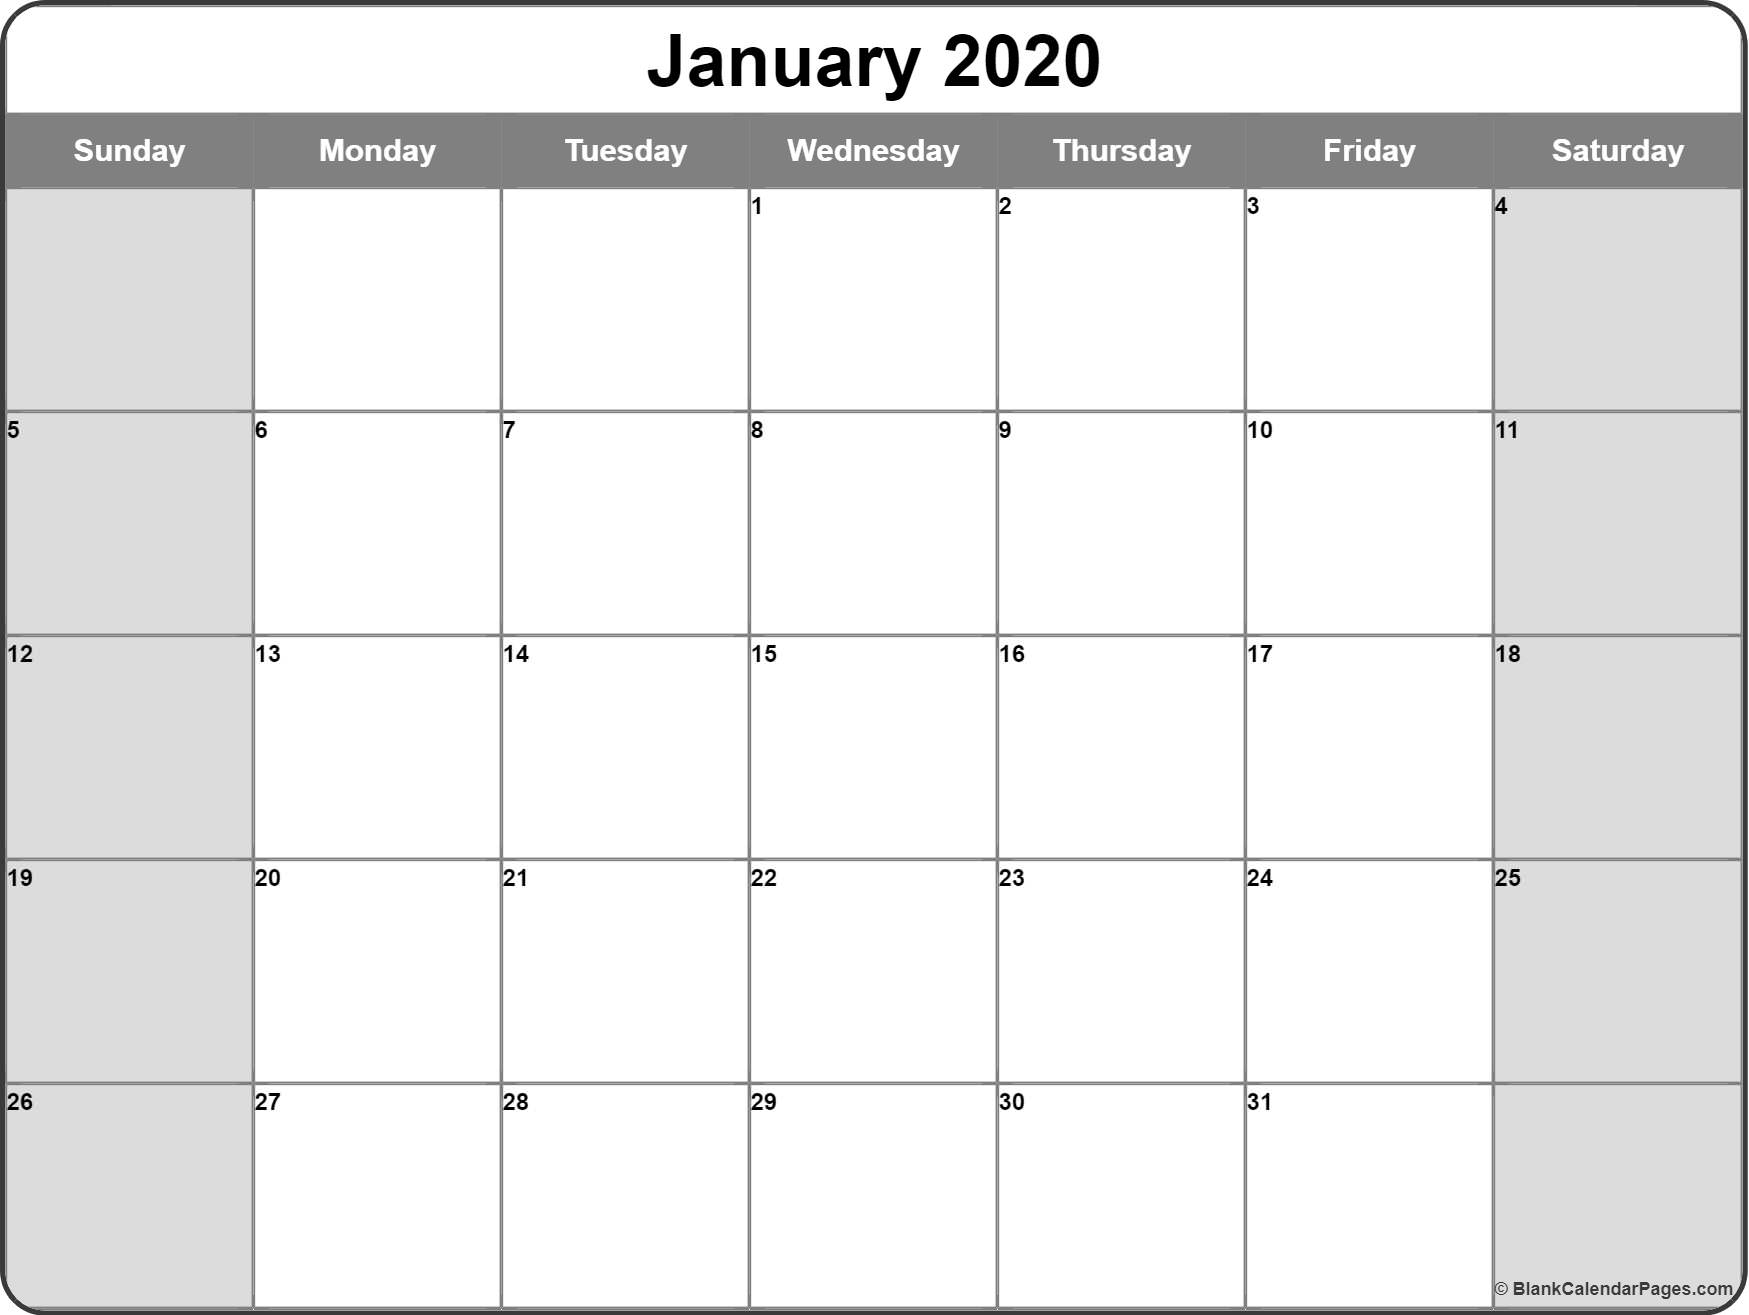 January 2020 Calendar | Free Printable Monthly Calendars in 2020 Free Printable Calendars Without Downloading Monthly